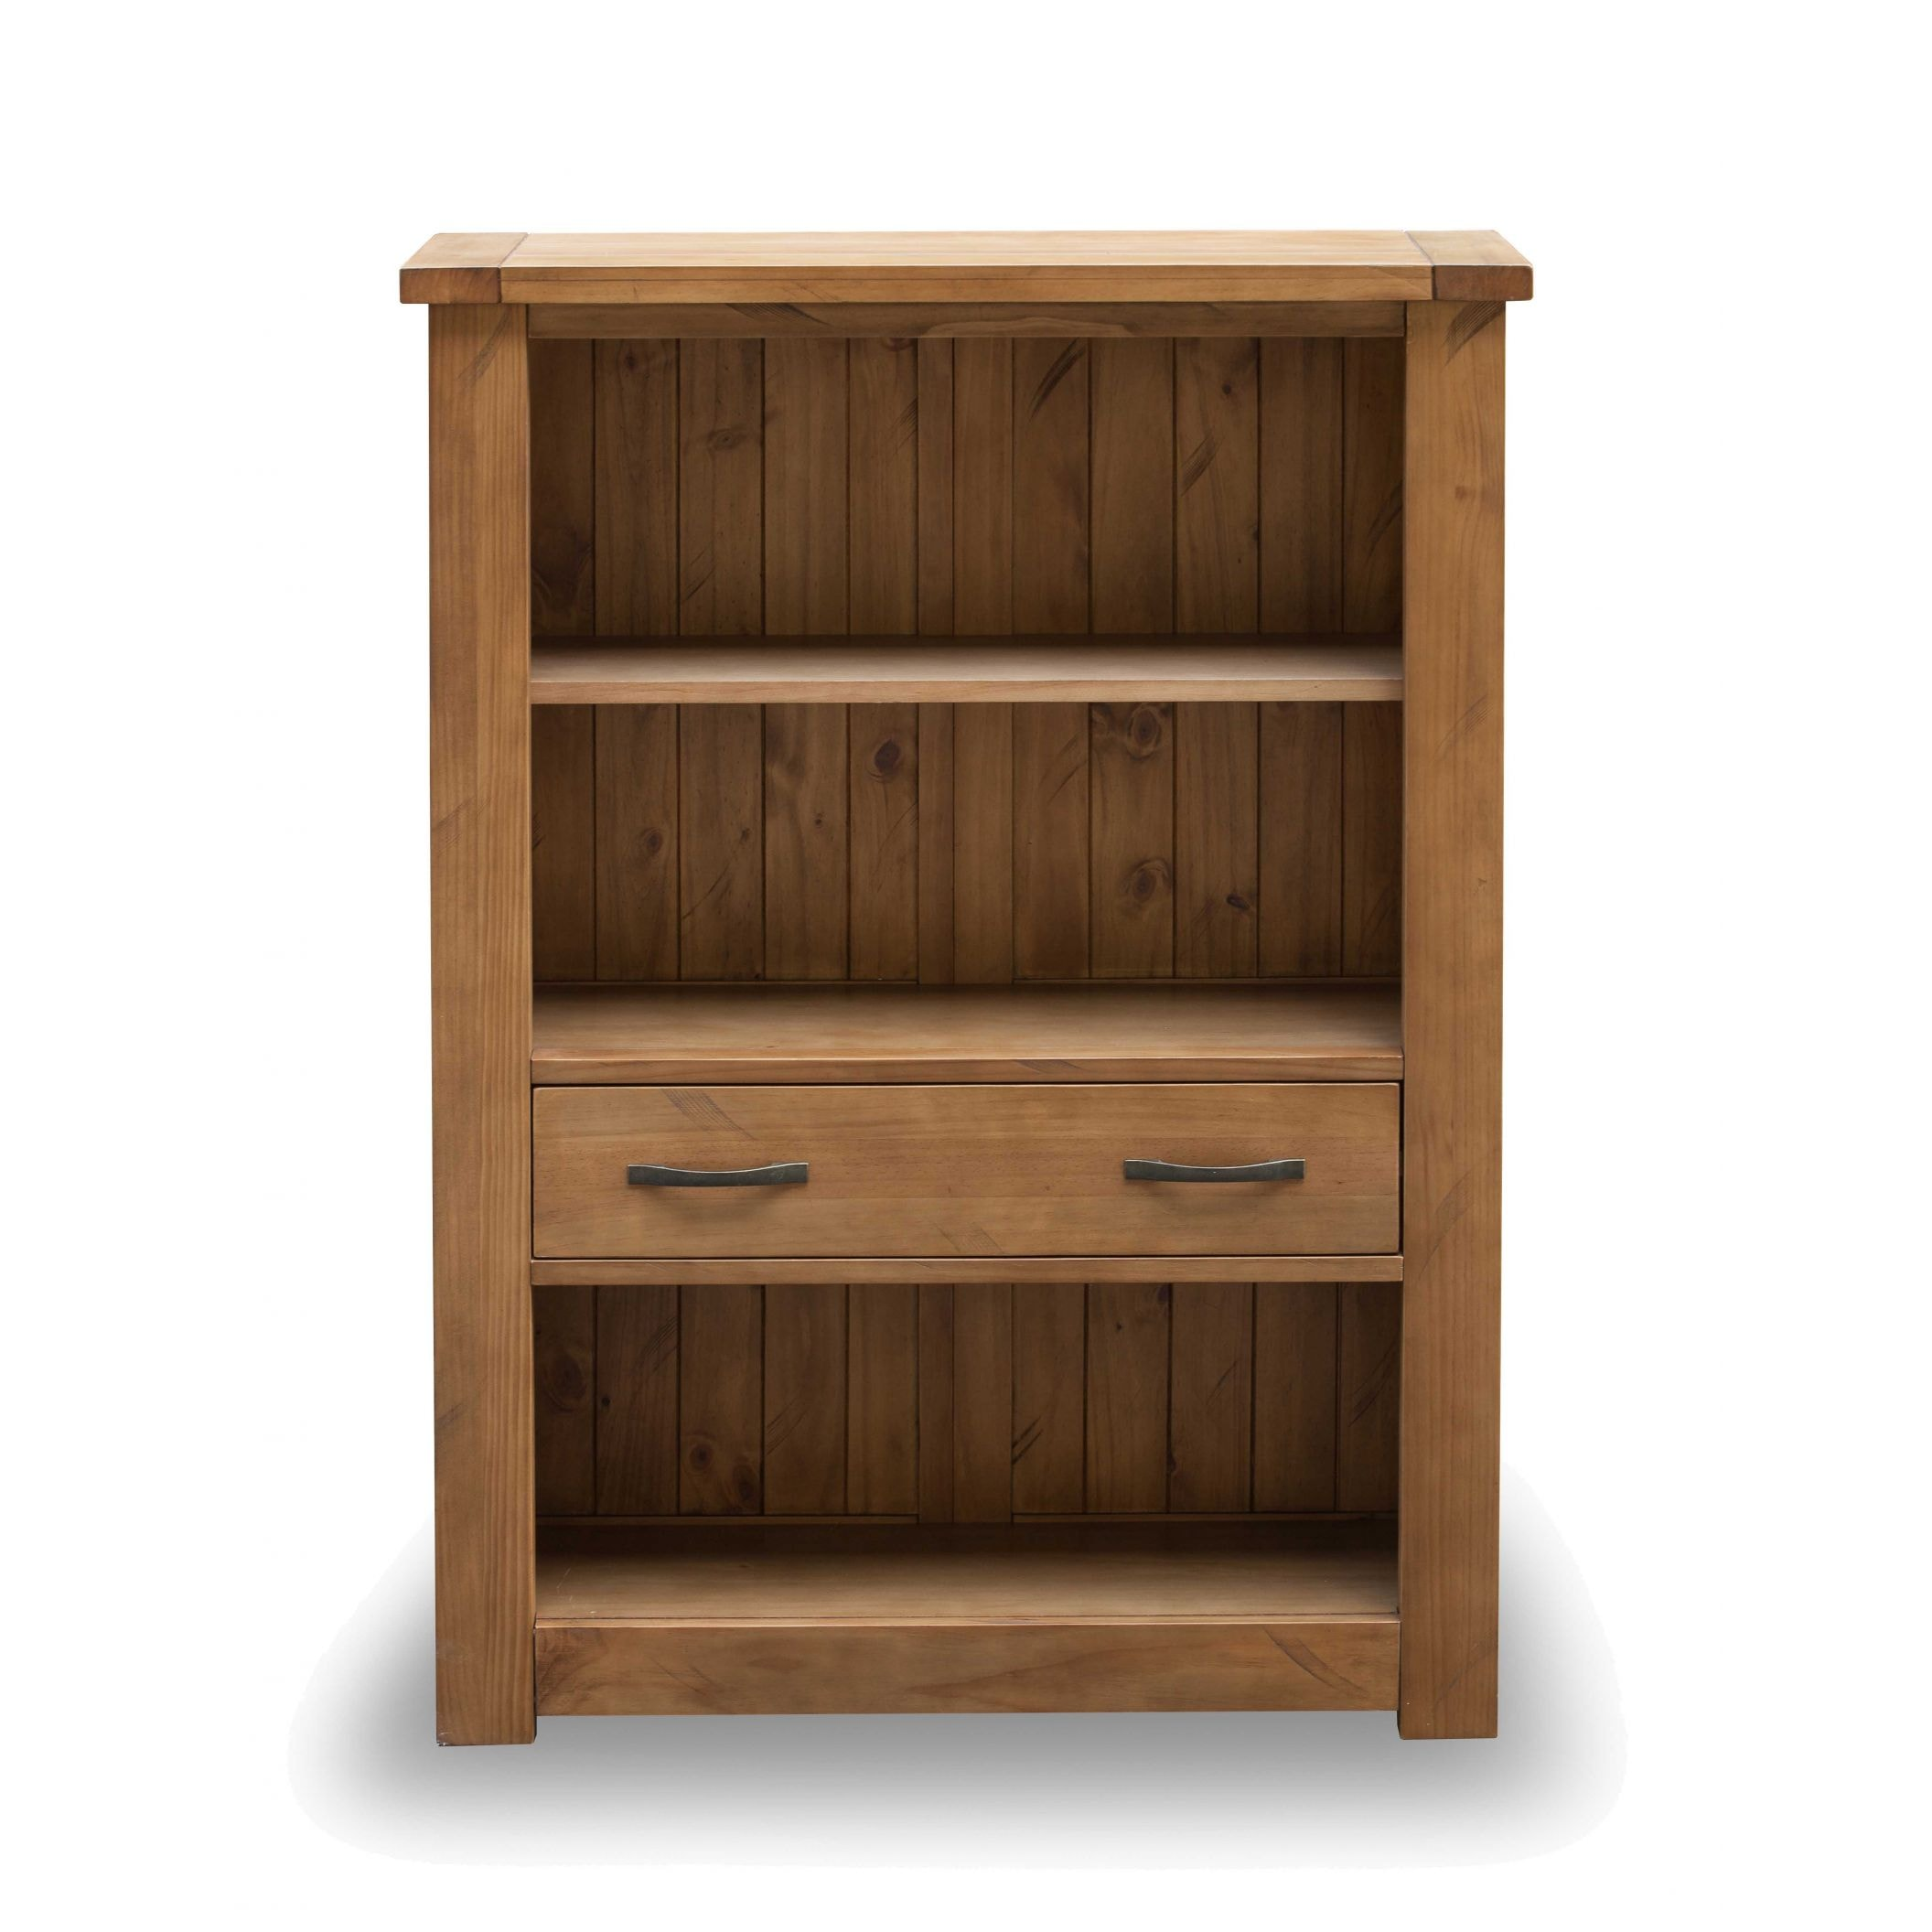 Boden pine bookcase solid pine furniture online now for Boden direct code